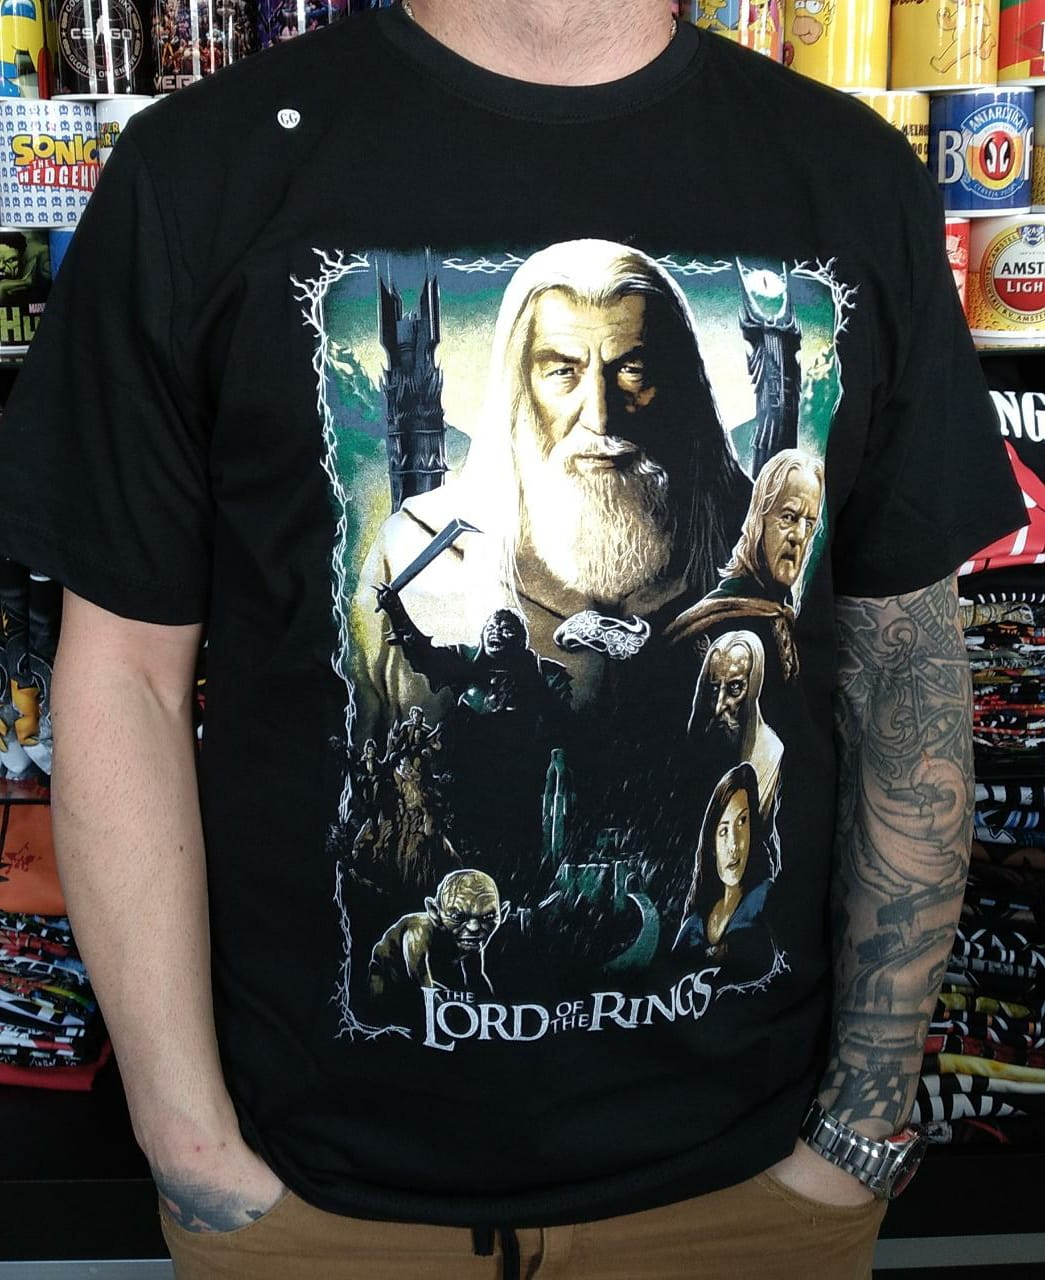 CAMISETA THE LORDS OF THE RINGS